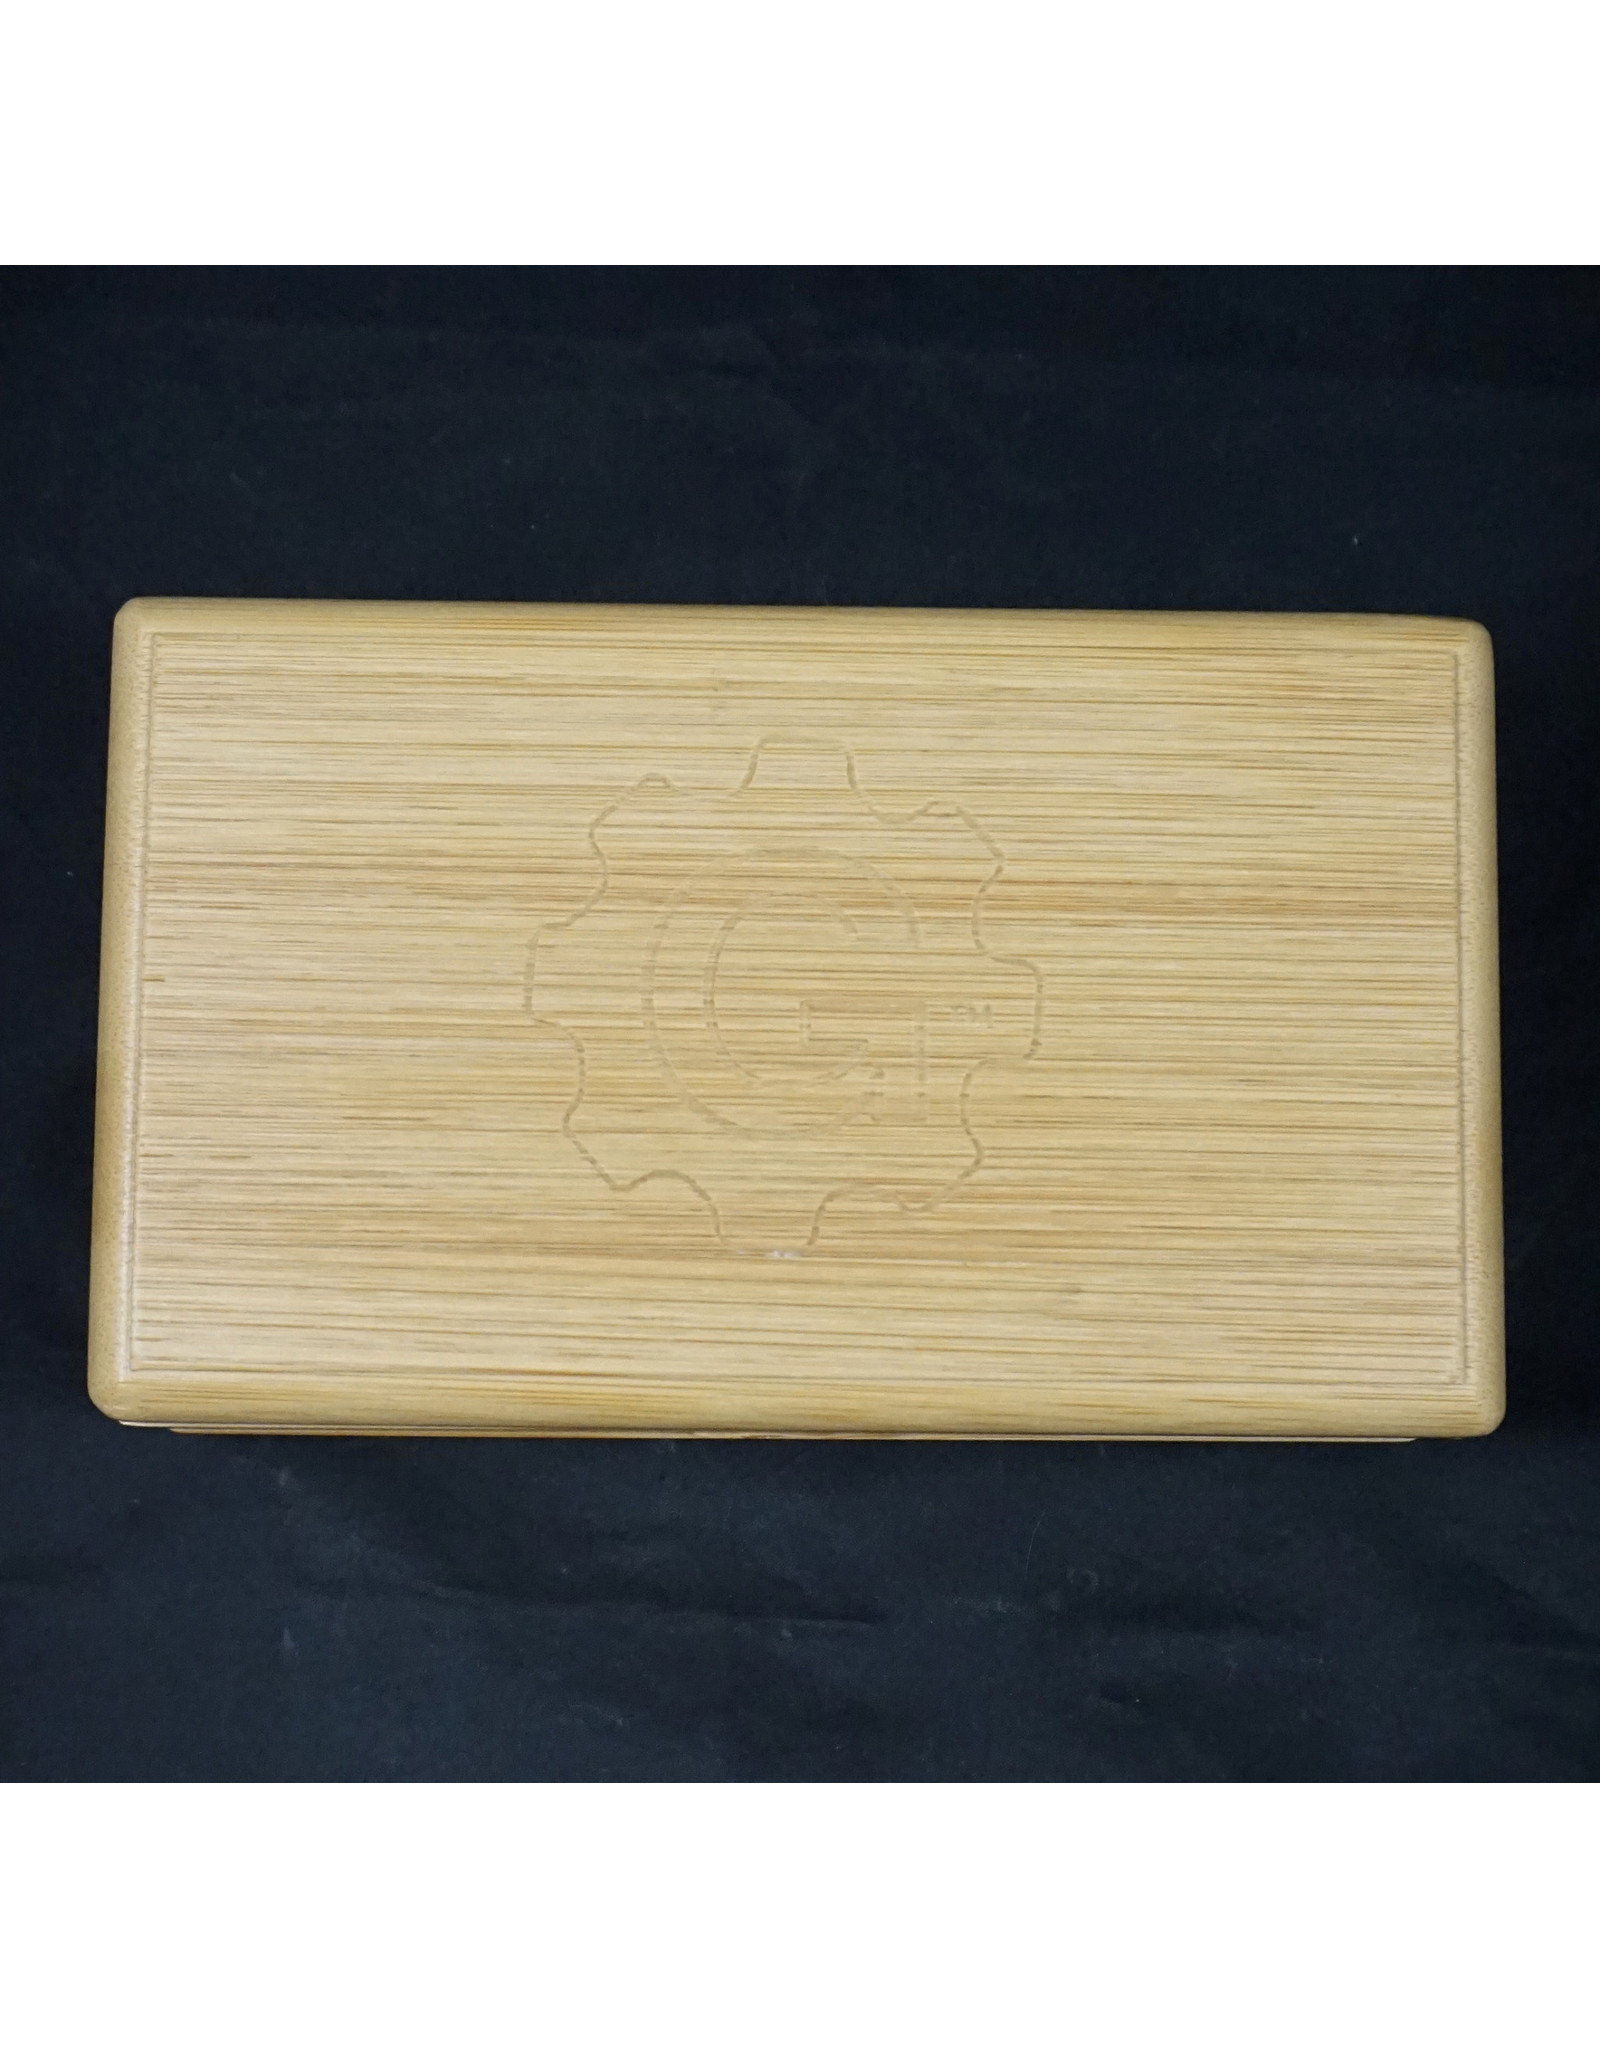 Grindhouse Grindhouse Bamboo Sifter Box - Medium 4x6.5